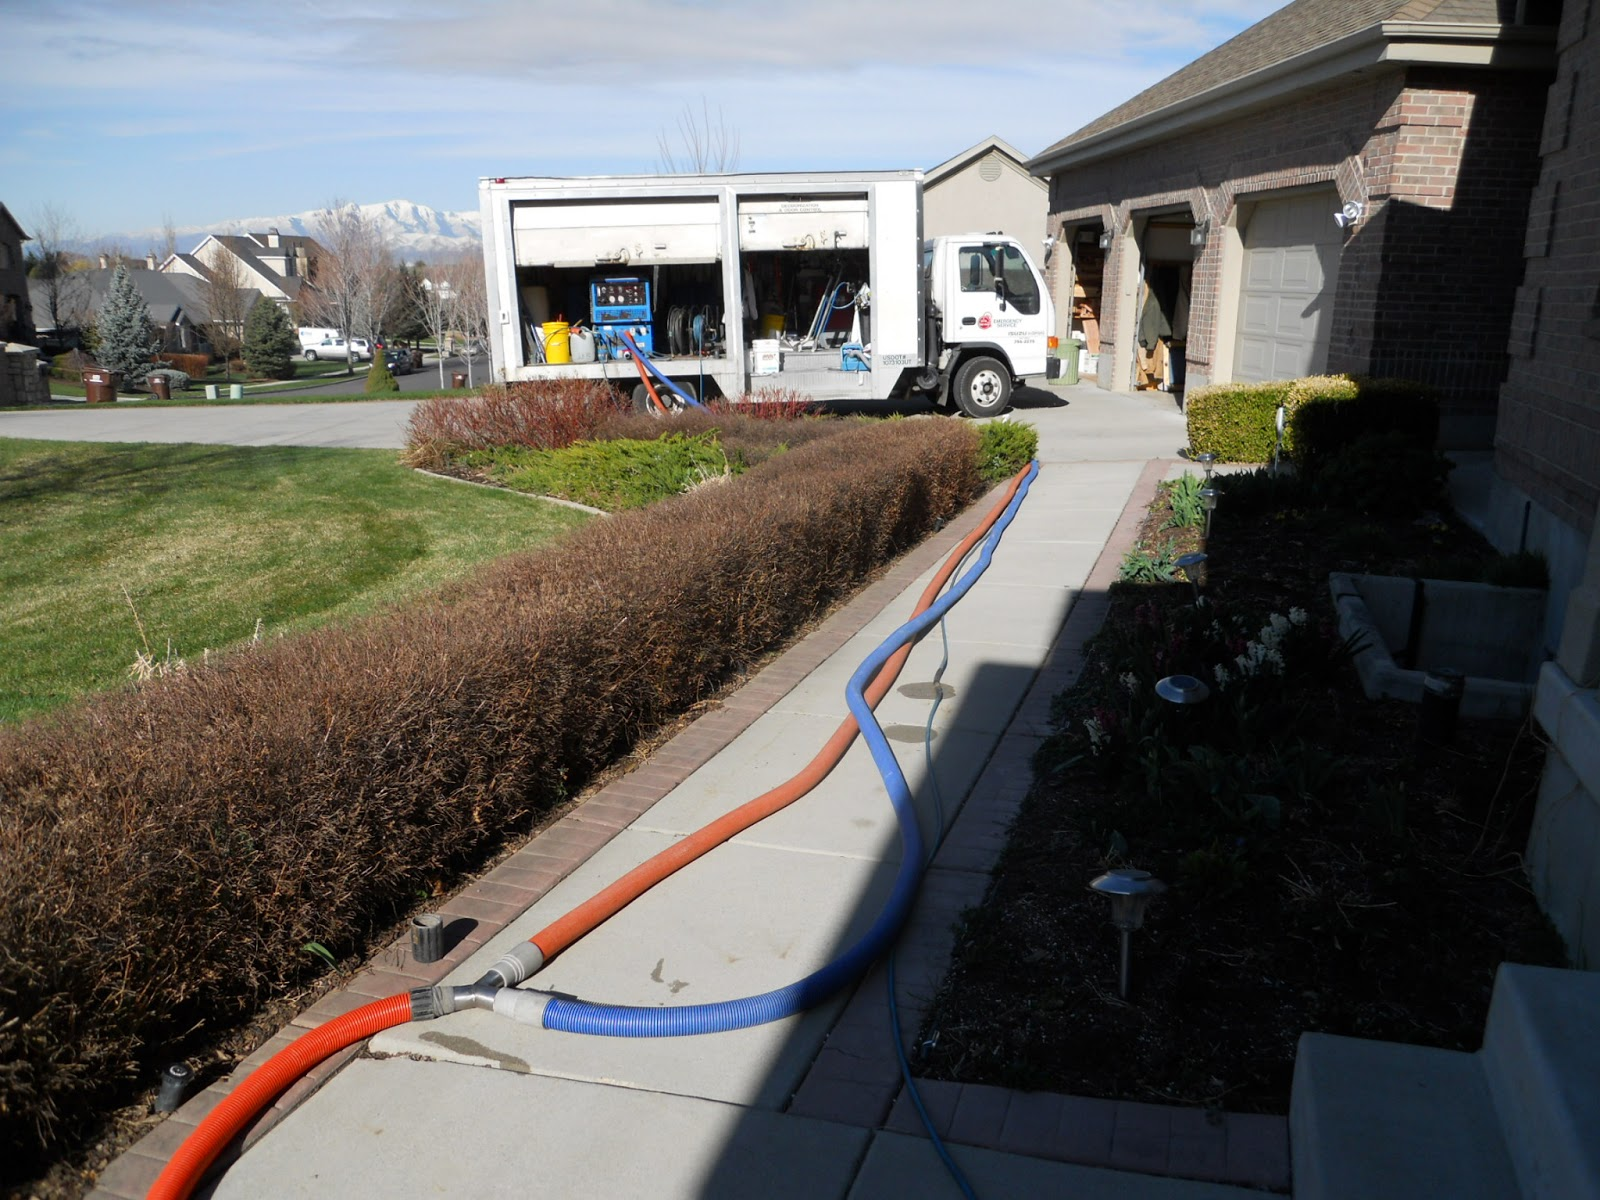 carpet cleaning in utah county here i am running 4 to the door to get more